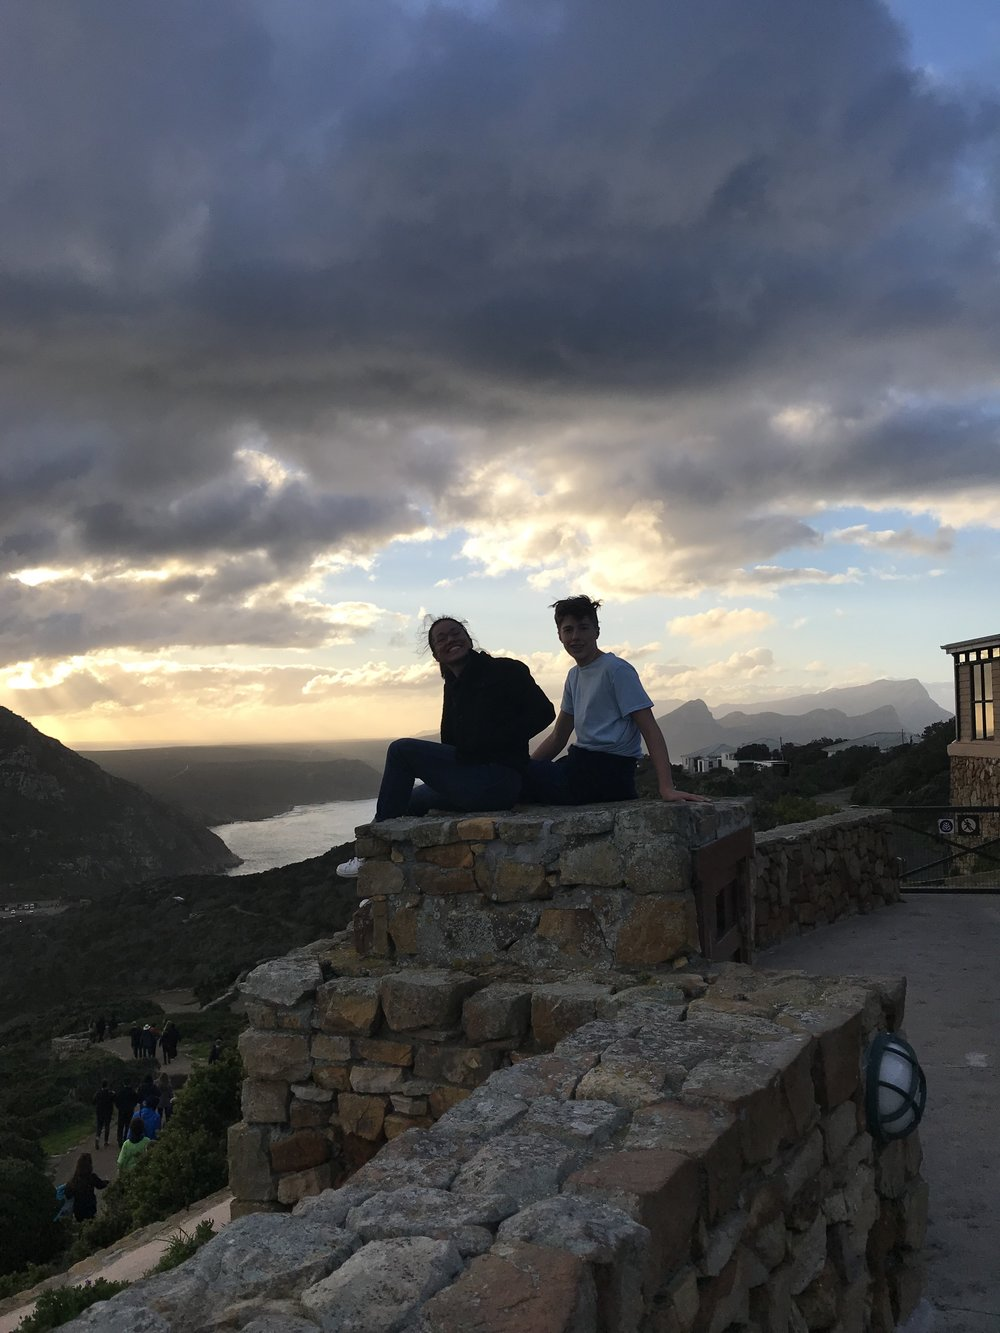 Cape of Good Hope. Photo: Anita Gay